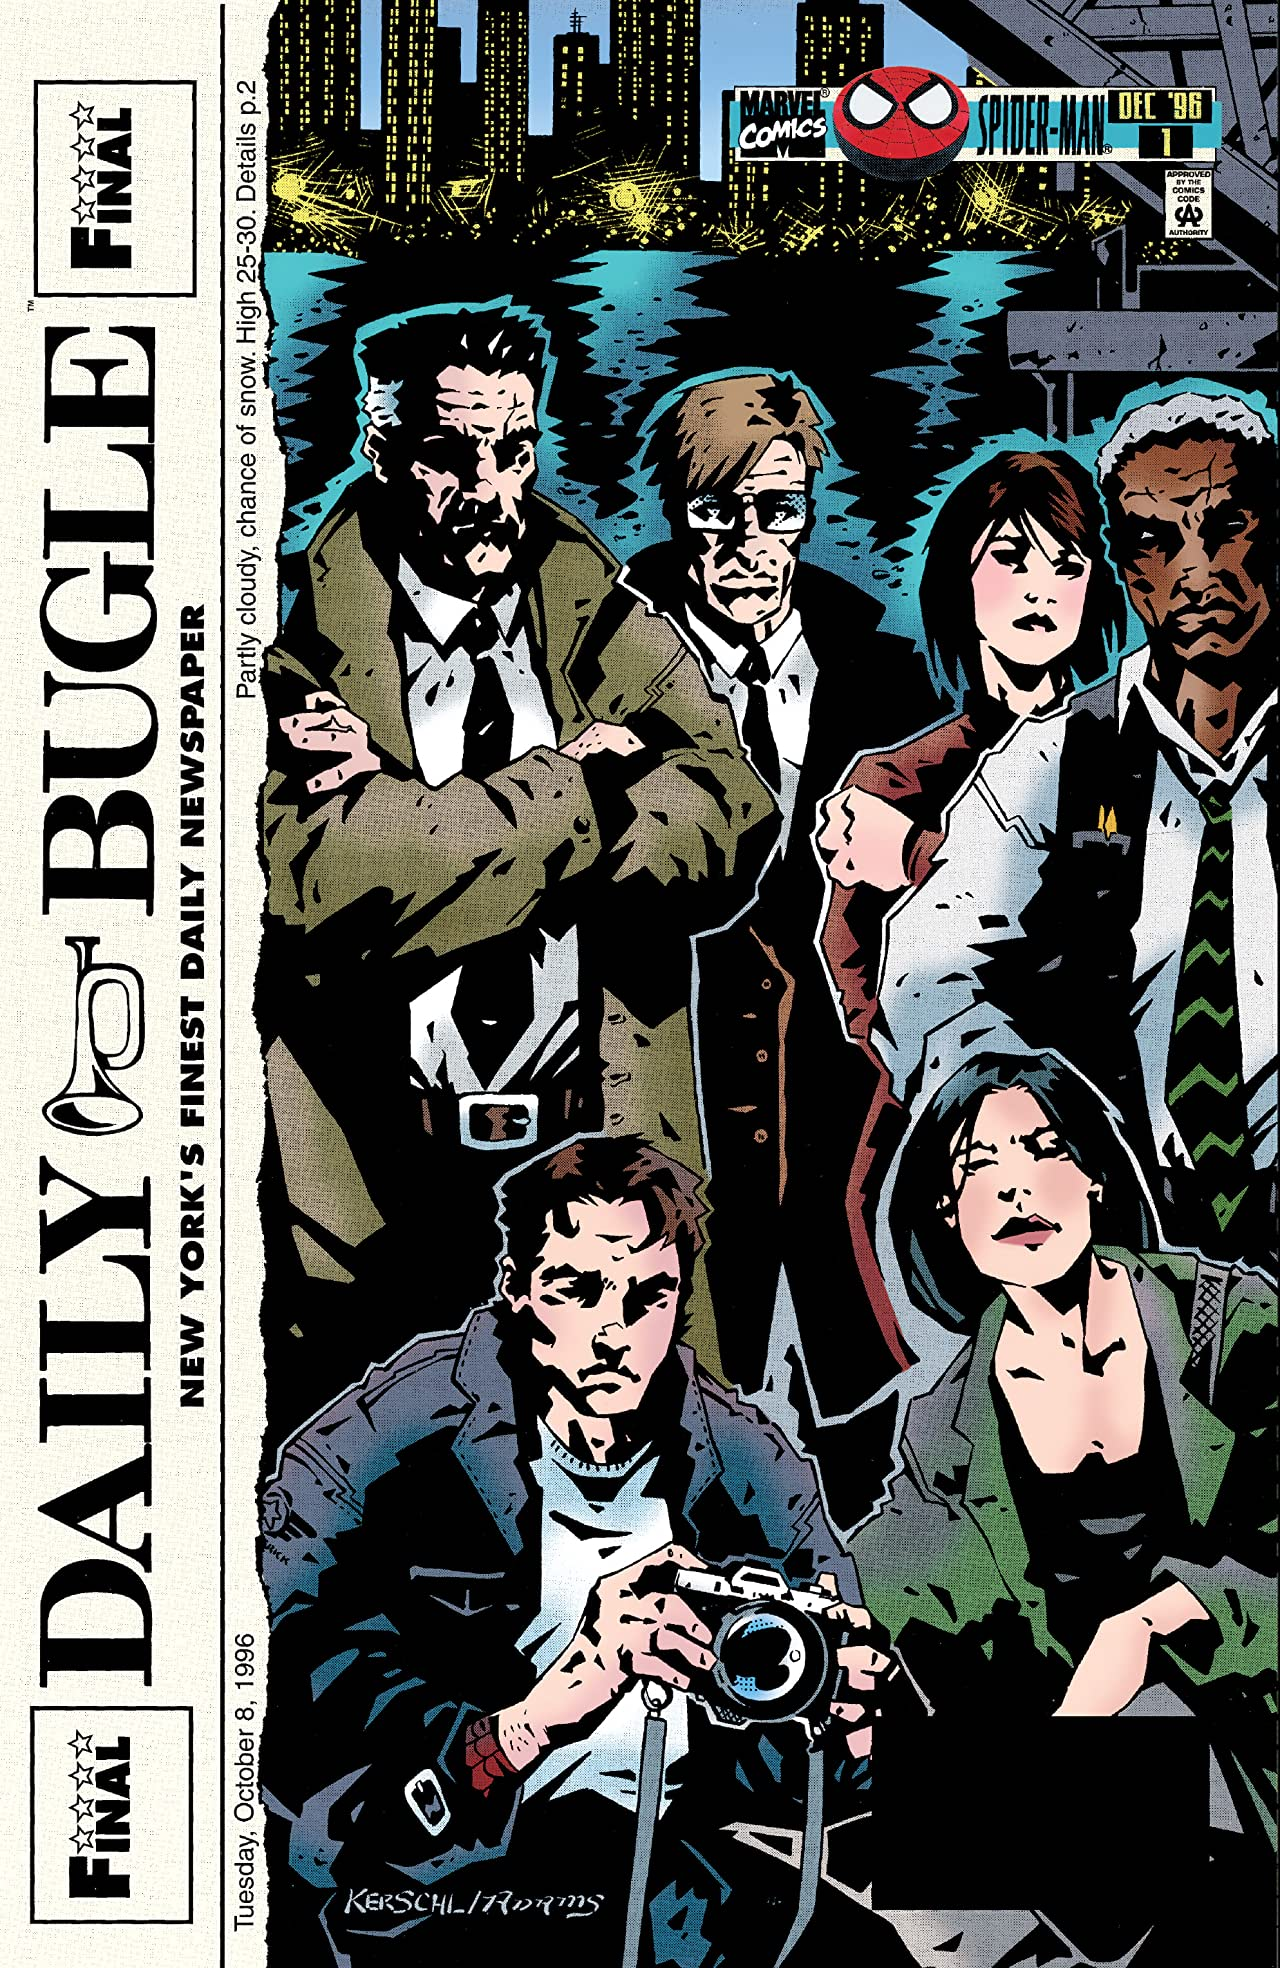 Daily Bugle (1996-1997) #1 (of 3)